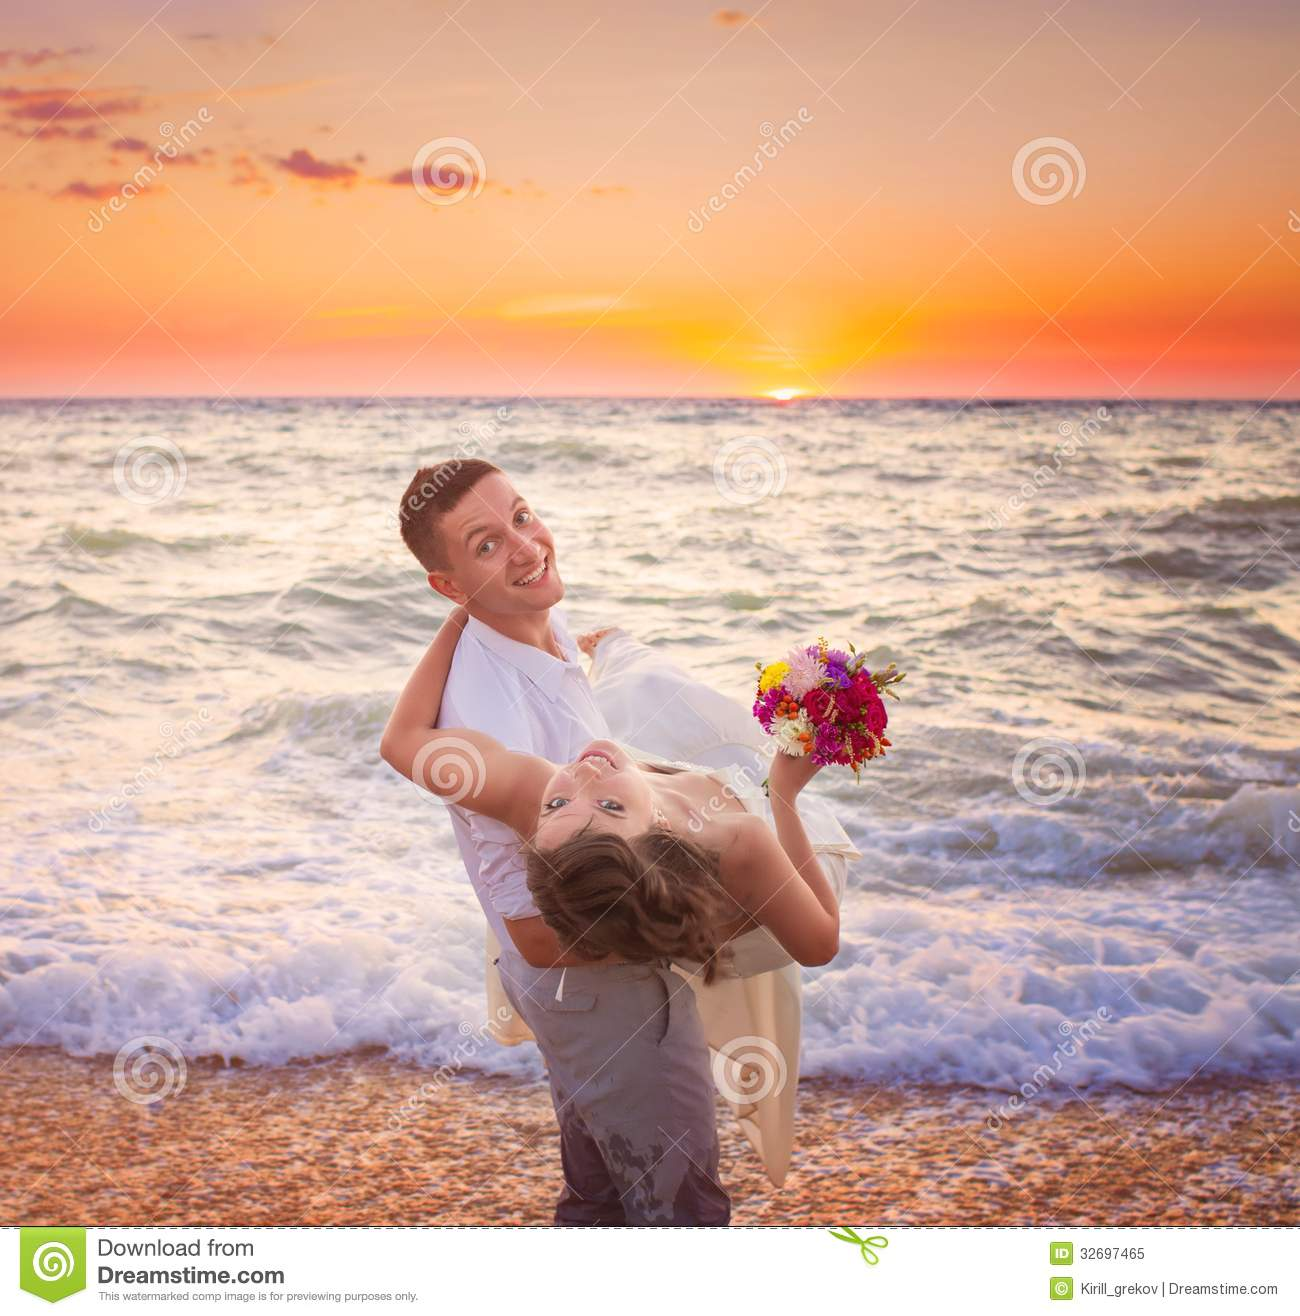 Couple At The Beach Stock Image Image Of Caucasian: Couple On The Beach Stock Image. Image Of Marriage